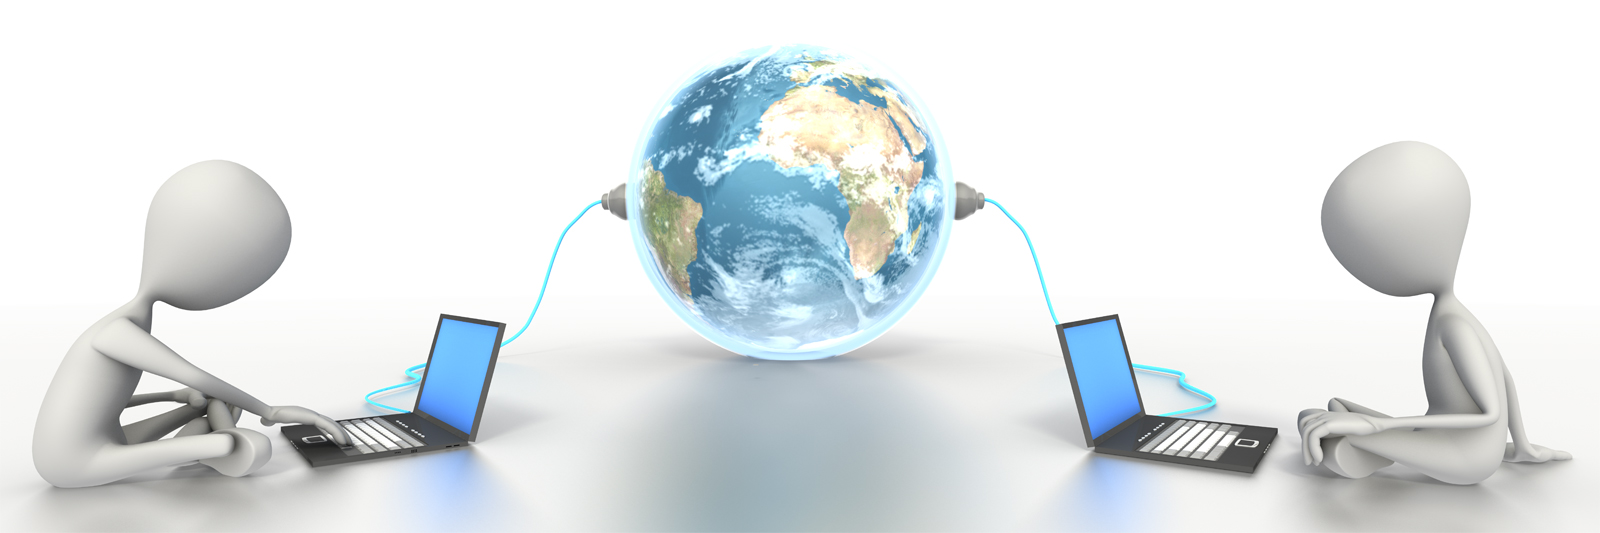 § 754 Protection of digital computer and communication systems and networks.